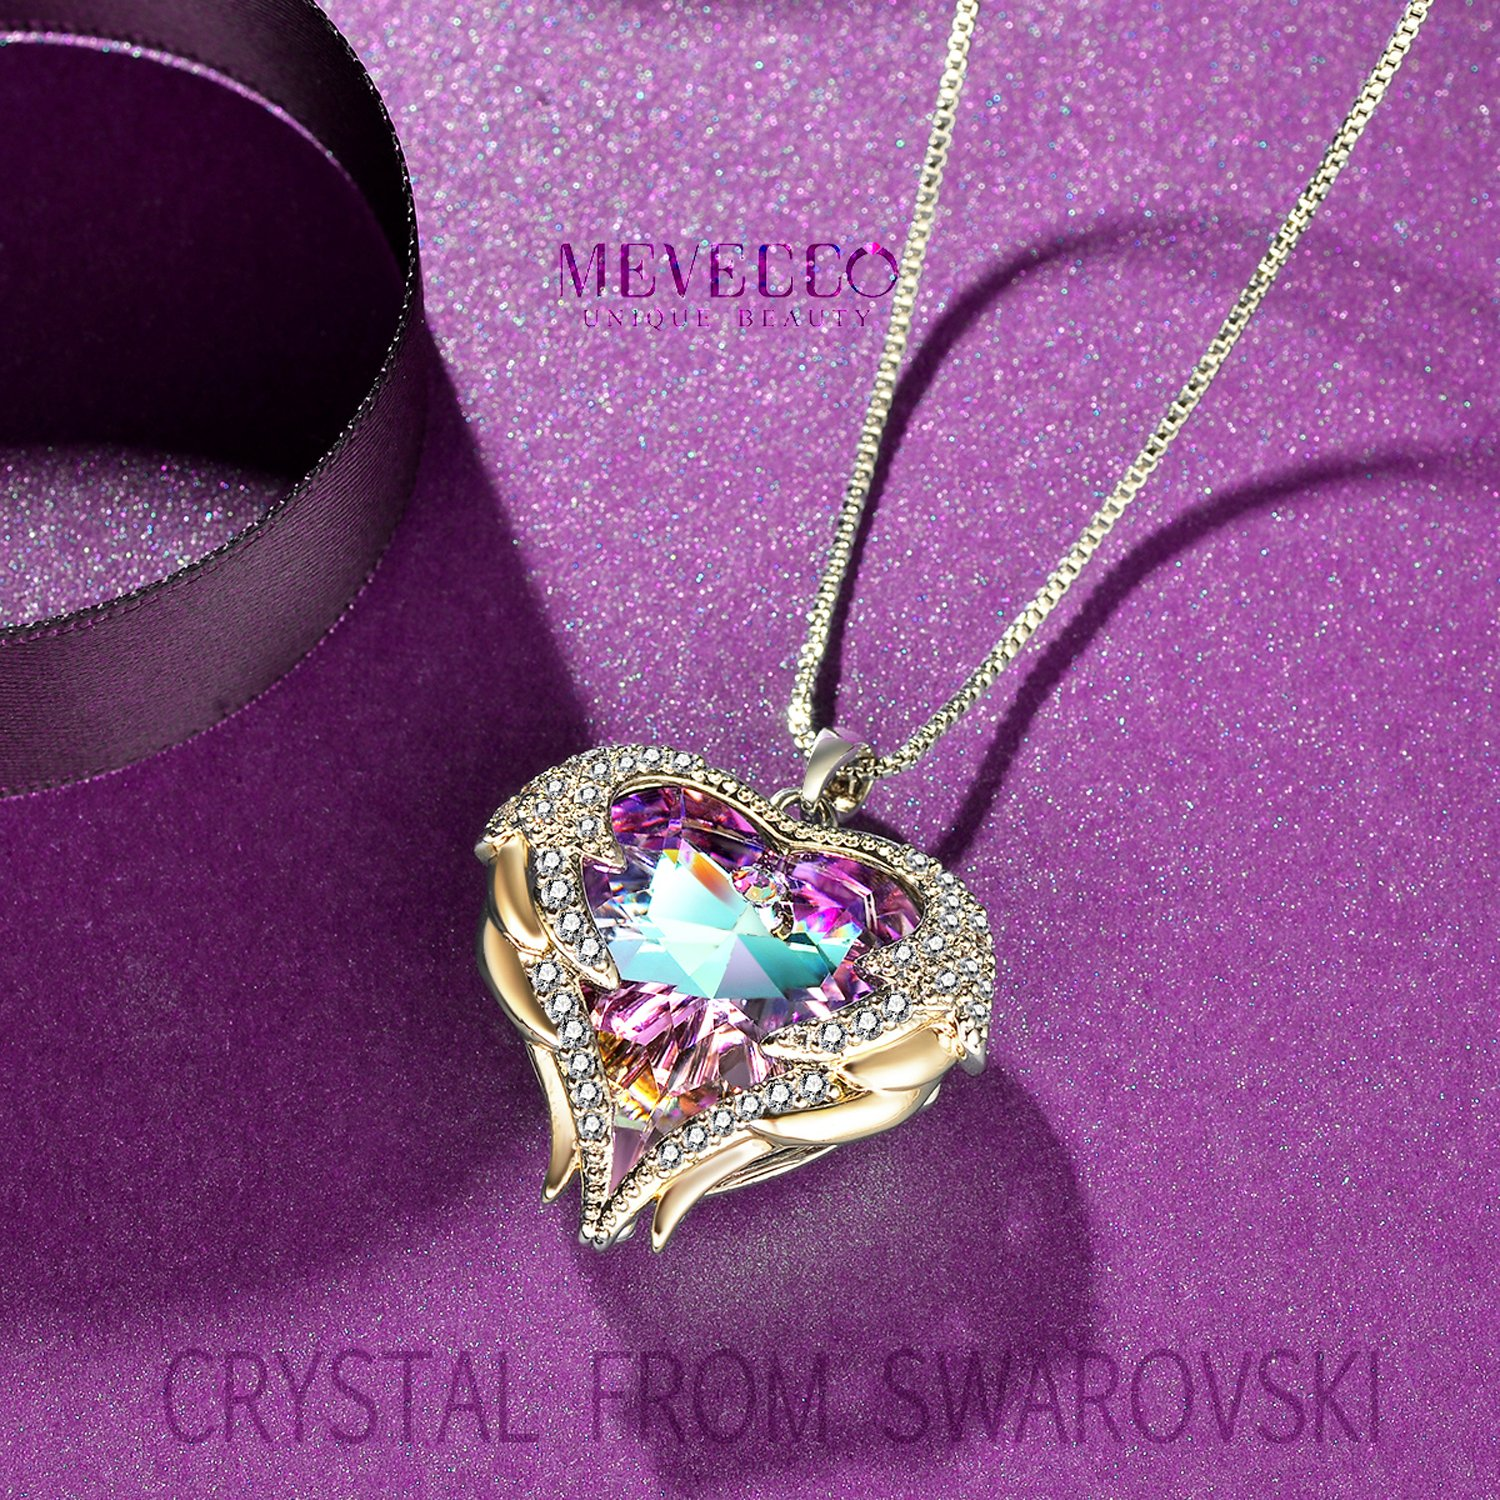 Mevecco ''Heart Of the Ocean'' Heart Pendant Necklace Made with Swarovski Crystals-NK10-Vol Light by Mevecco (Image #5)